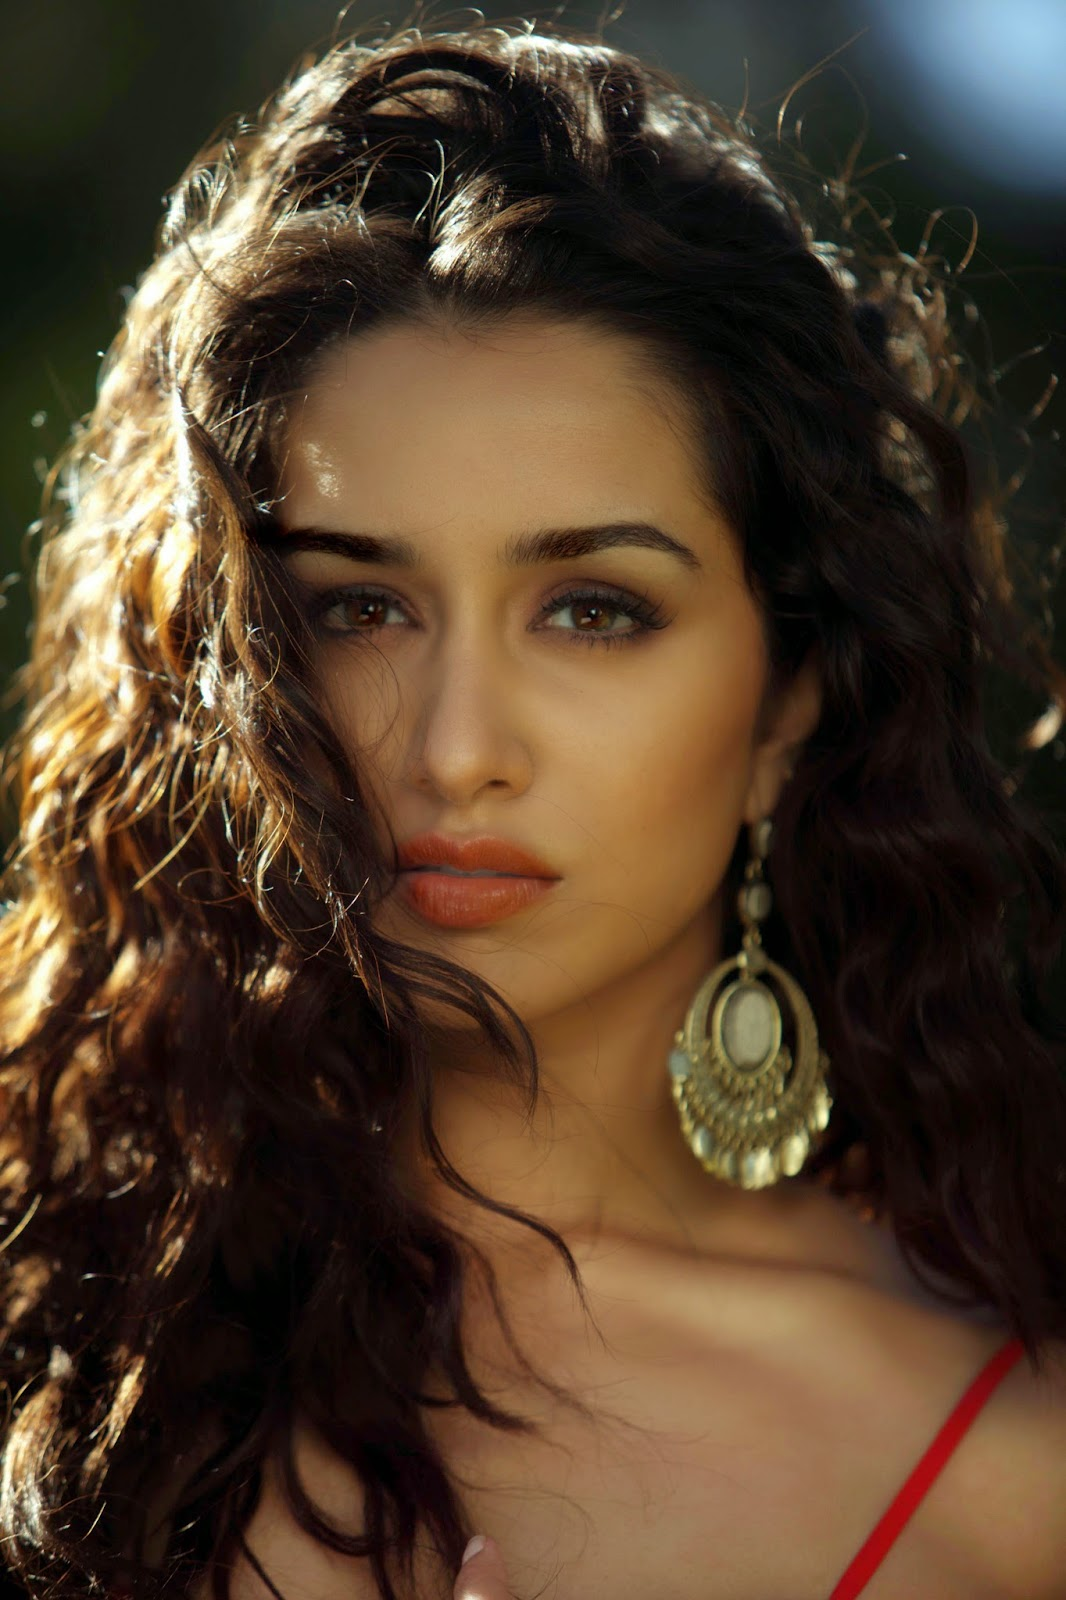 Aashiqui 2, Ankita Tiwari, Bollywood, Bollywood actress, Ek Villain, Entertainment, Film, Gabbar, Haider, Mohit Suri, Movie, Showbiz, Shraddha Kapoor, Shraddha Kapoor Photo, Sidharth Malhotra, Student of the Year,